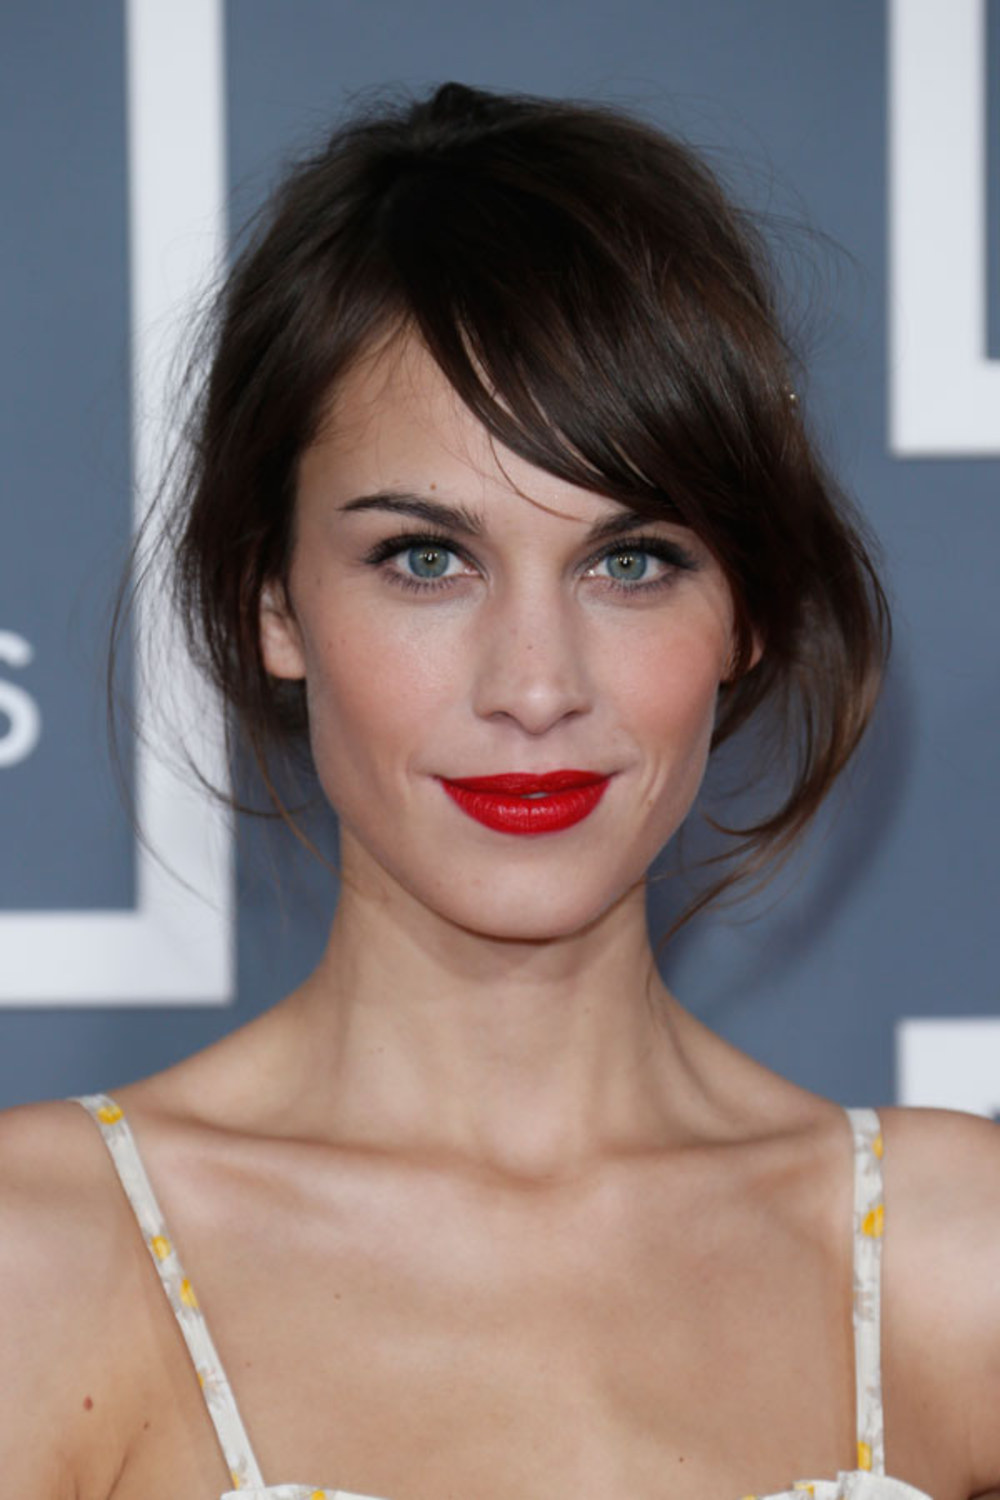 The 36-year old daughter of father (?) and mother(?) Alexa Chung in 2020 photo. Alexa Chung earned a million dollar salary - leaving the net worth at 8 million in 2020